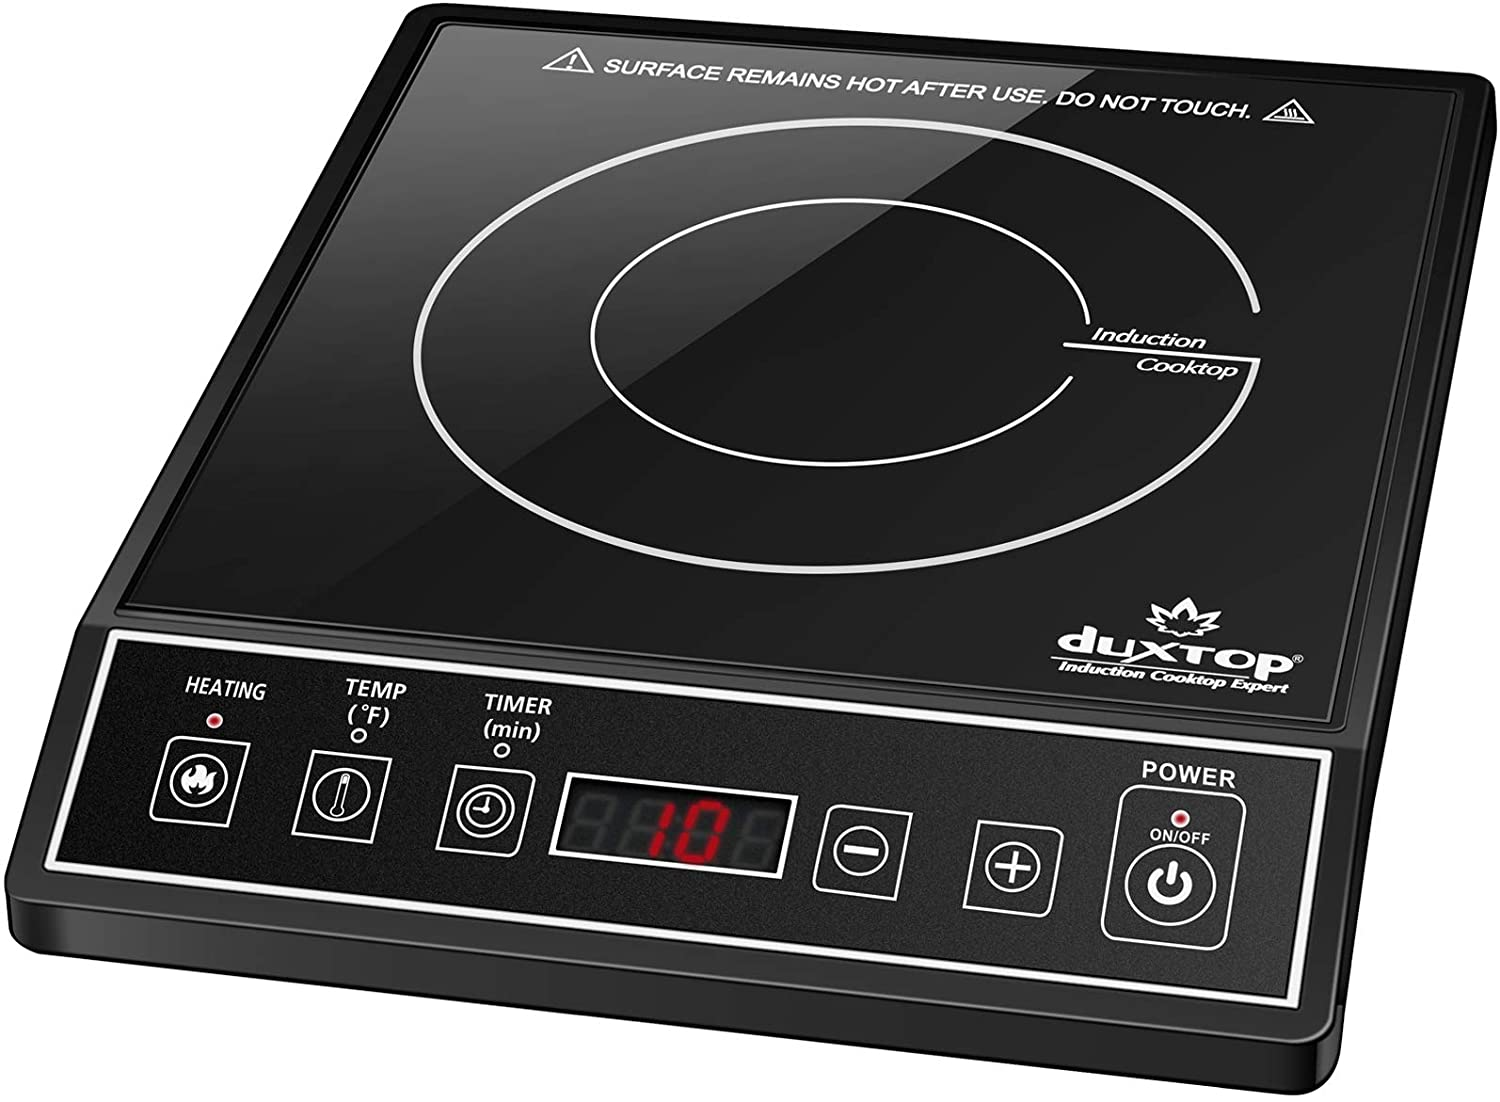 Duxtop 9100MC Portable Induction Cooktop